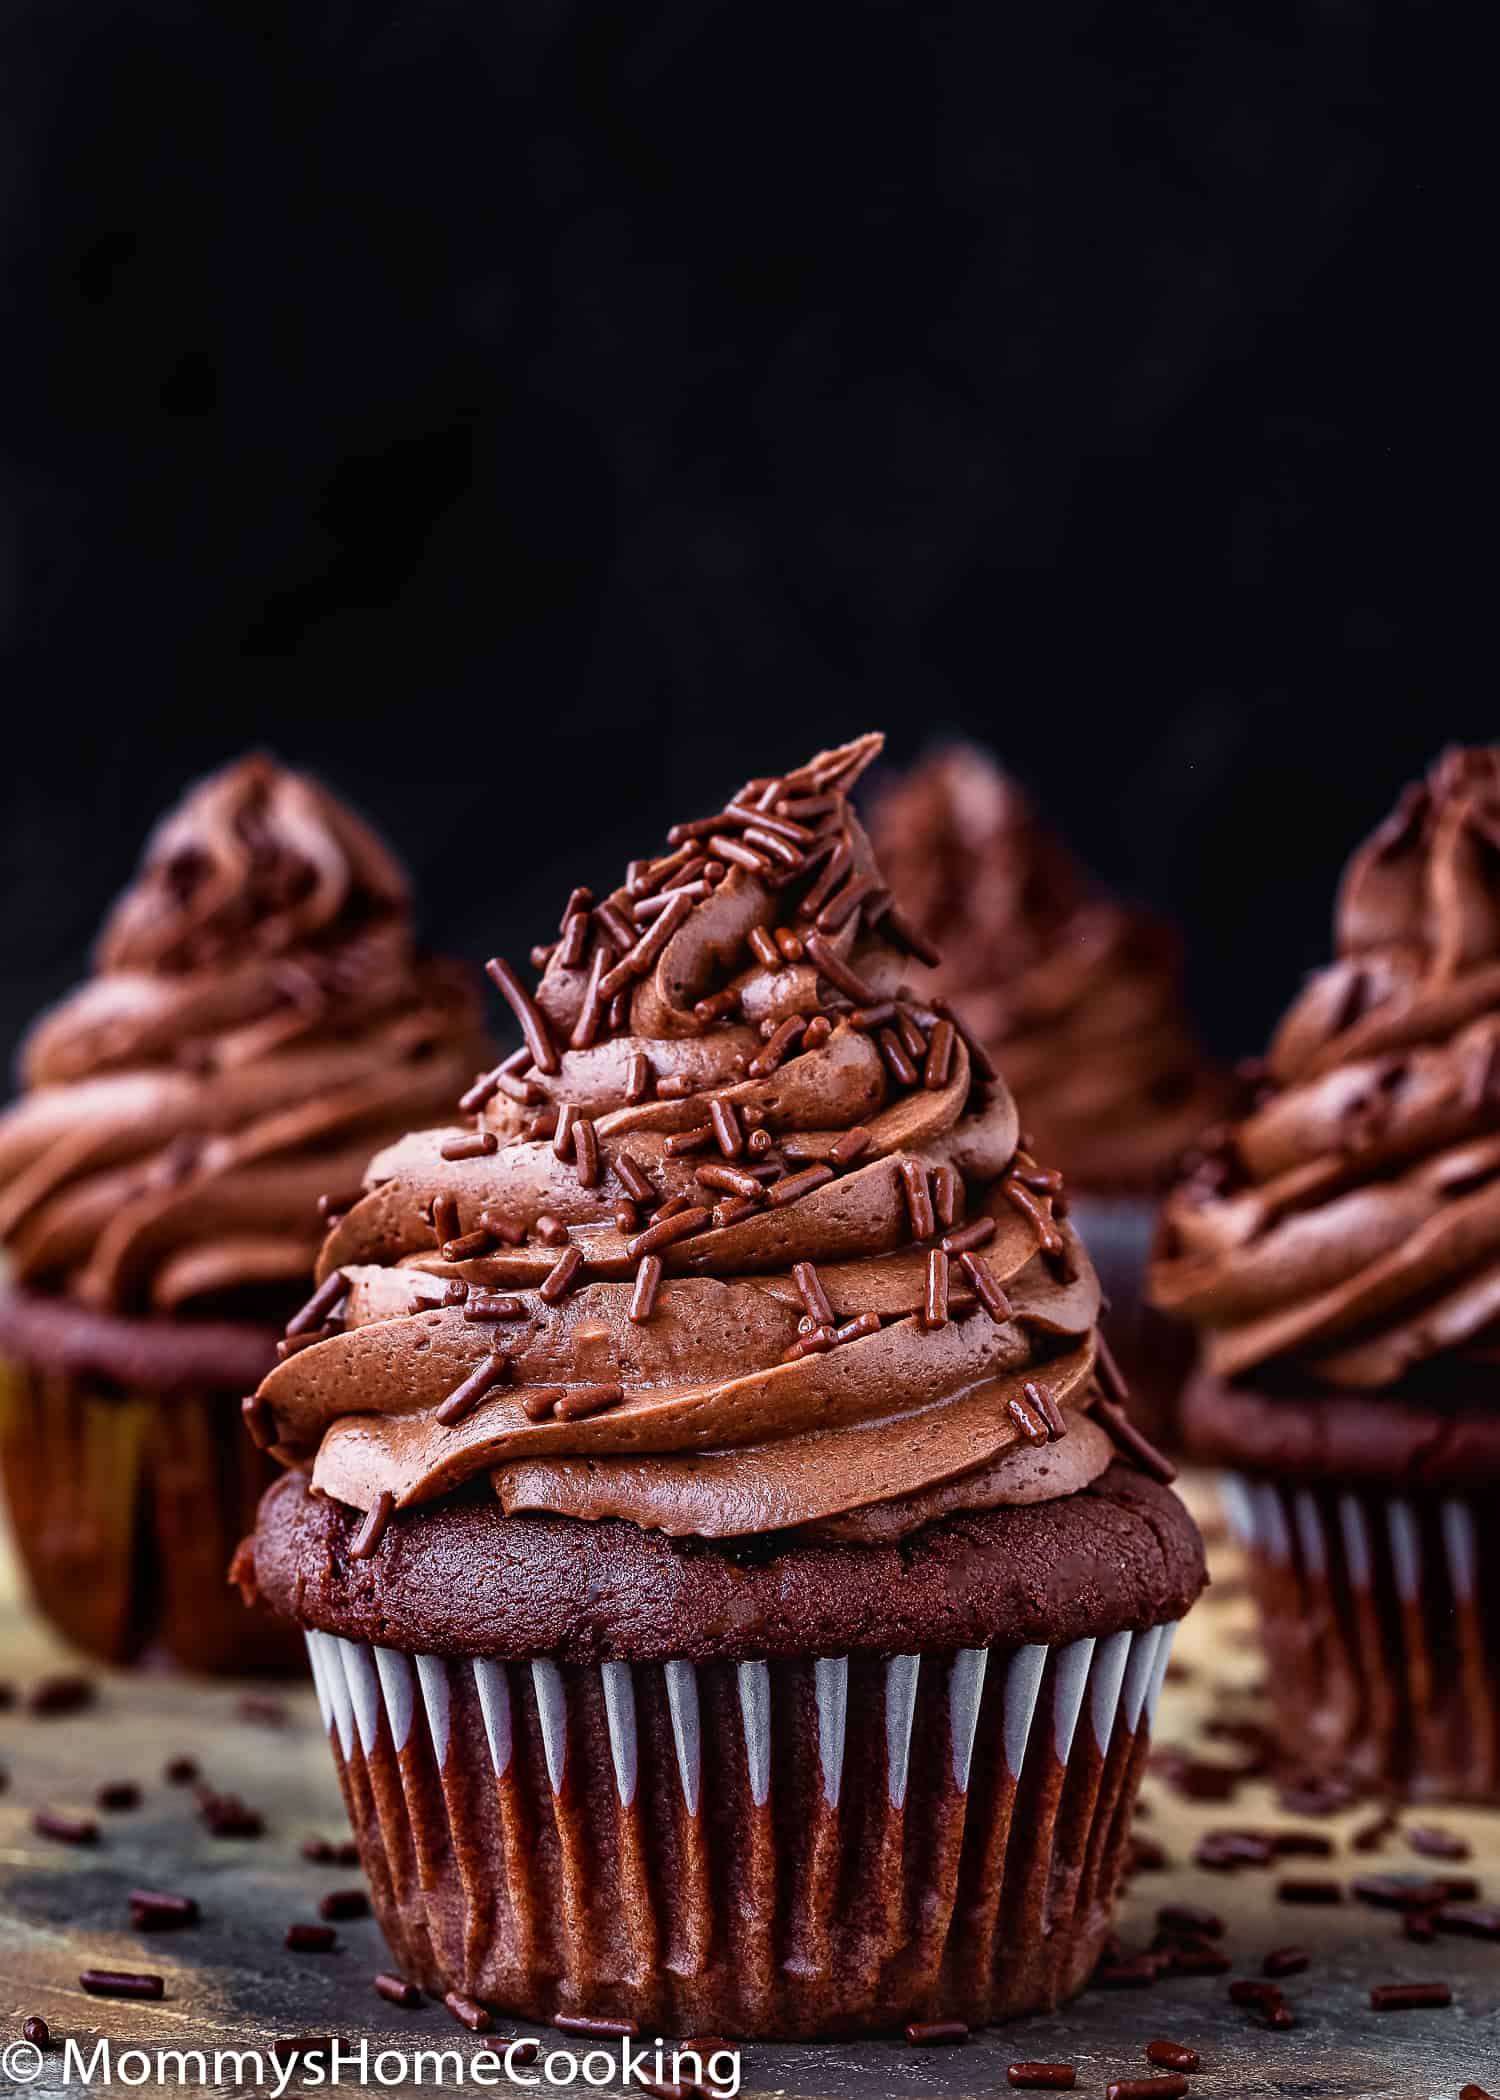 These Eggless Chocolate Cupcakes are super chocolatey, moist, rich and delicious! They're easy to make, with just a handful of ingredients. Perfect for birthday parties, gatherings, celebrations or whenever the mood strikes. https://mommyshomecooking.com